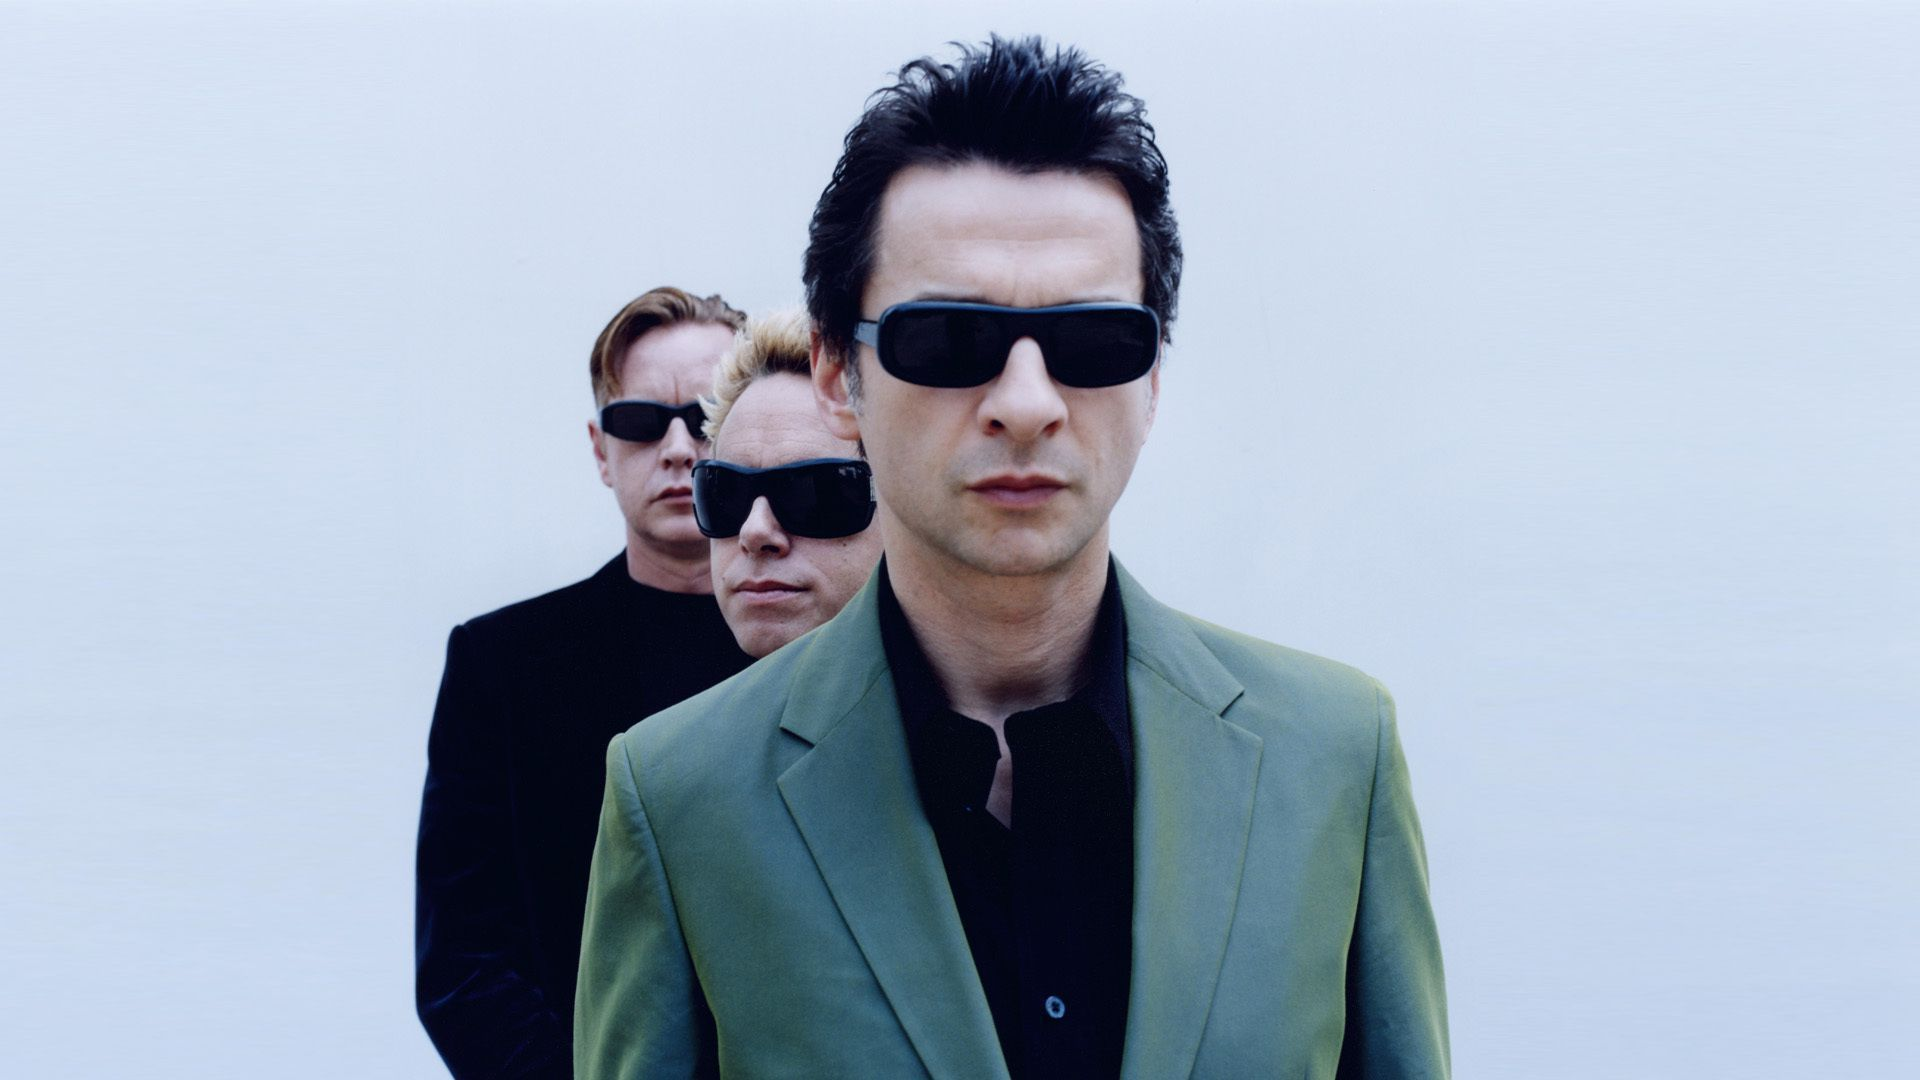 Depeche Mode Wallpapers Backgrounds | 1920 x 1080 jpeg 113kB